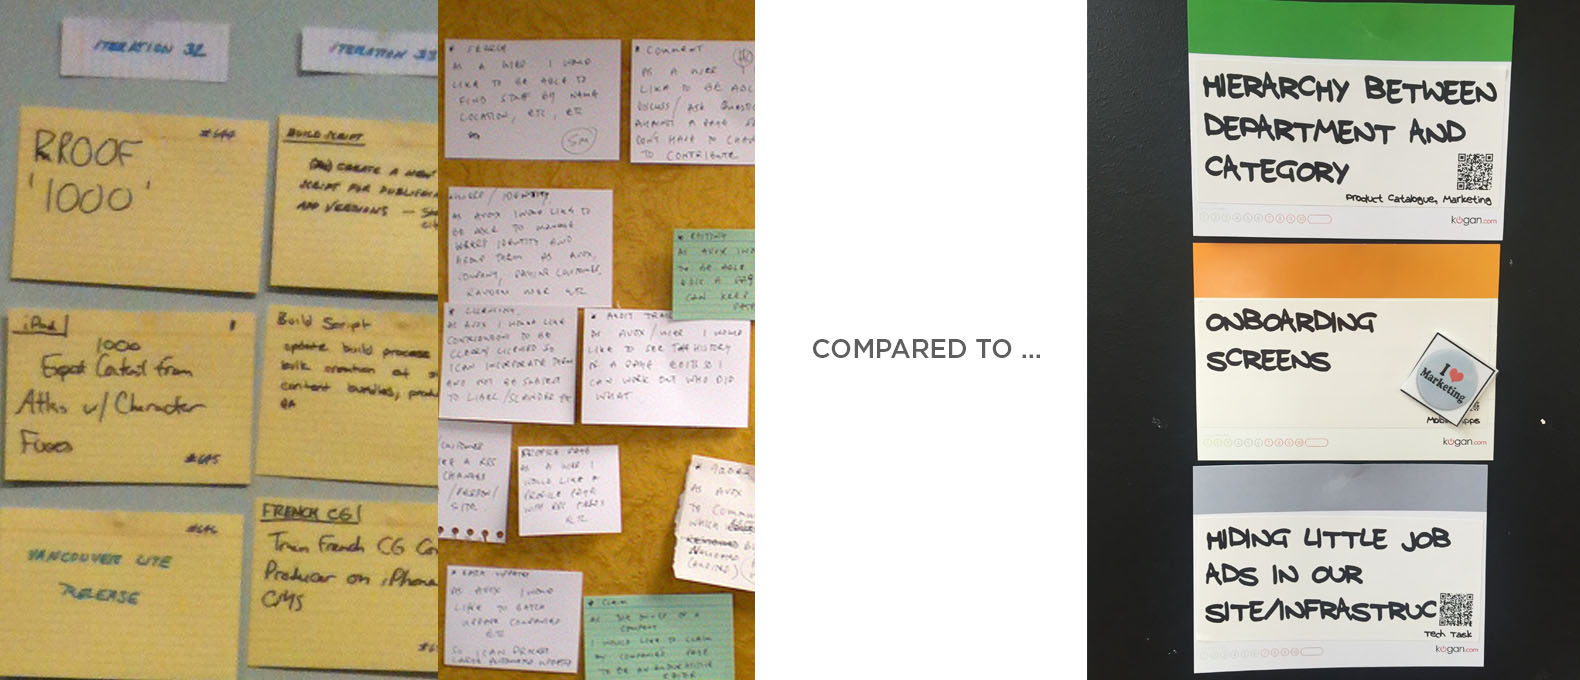 Compare pictures of hand written notes I found on the internet (left) with the Kogan.com cards (right).